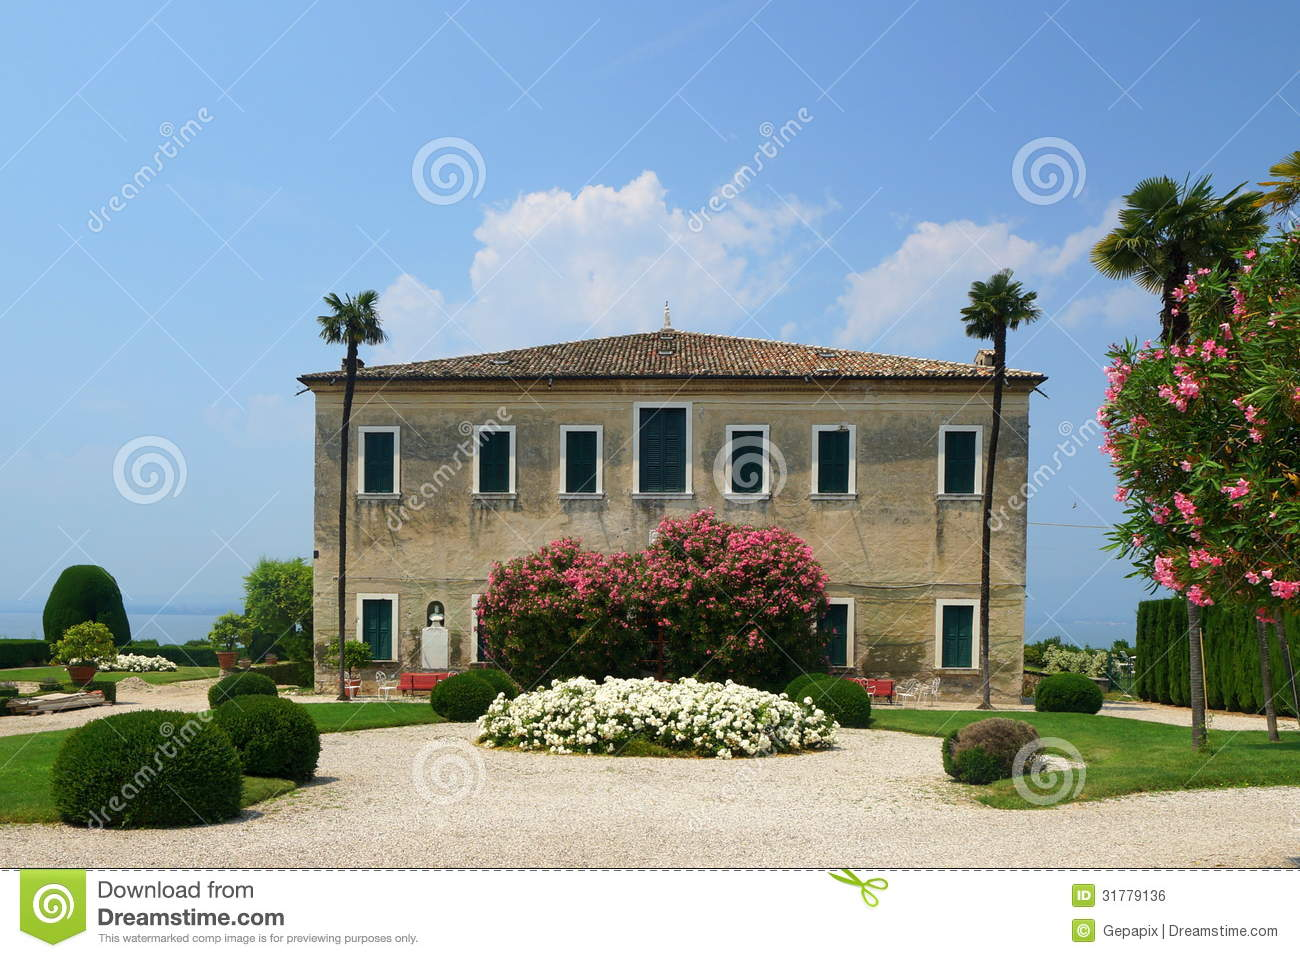 Beautiful Luxury Dream House Floor Plans Designs In moreover Holly Madison Forgets Woes Enjoys Disney Themed Bachelorette Ahead Wedding additionally Gore Vidal n 1728600 also Floor Plan Of The Colosseum as well 1800s Mansion Floor Plans. on italian mansion plans